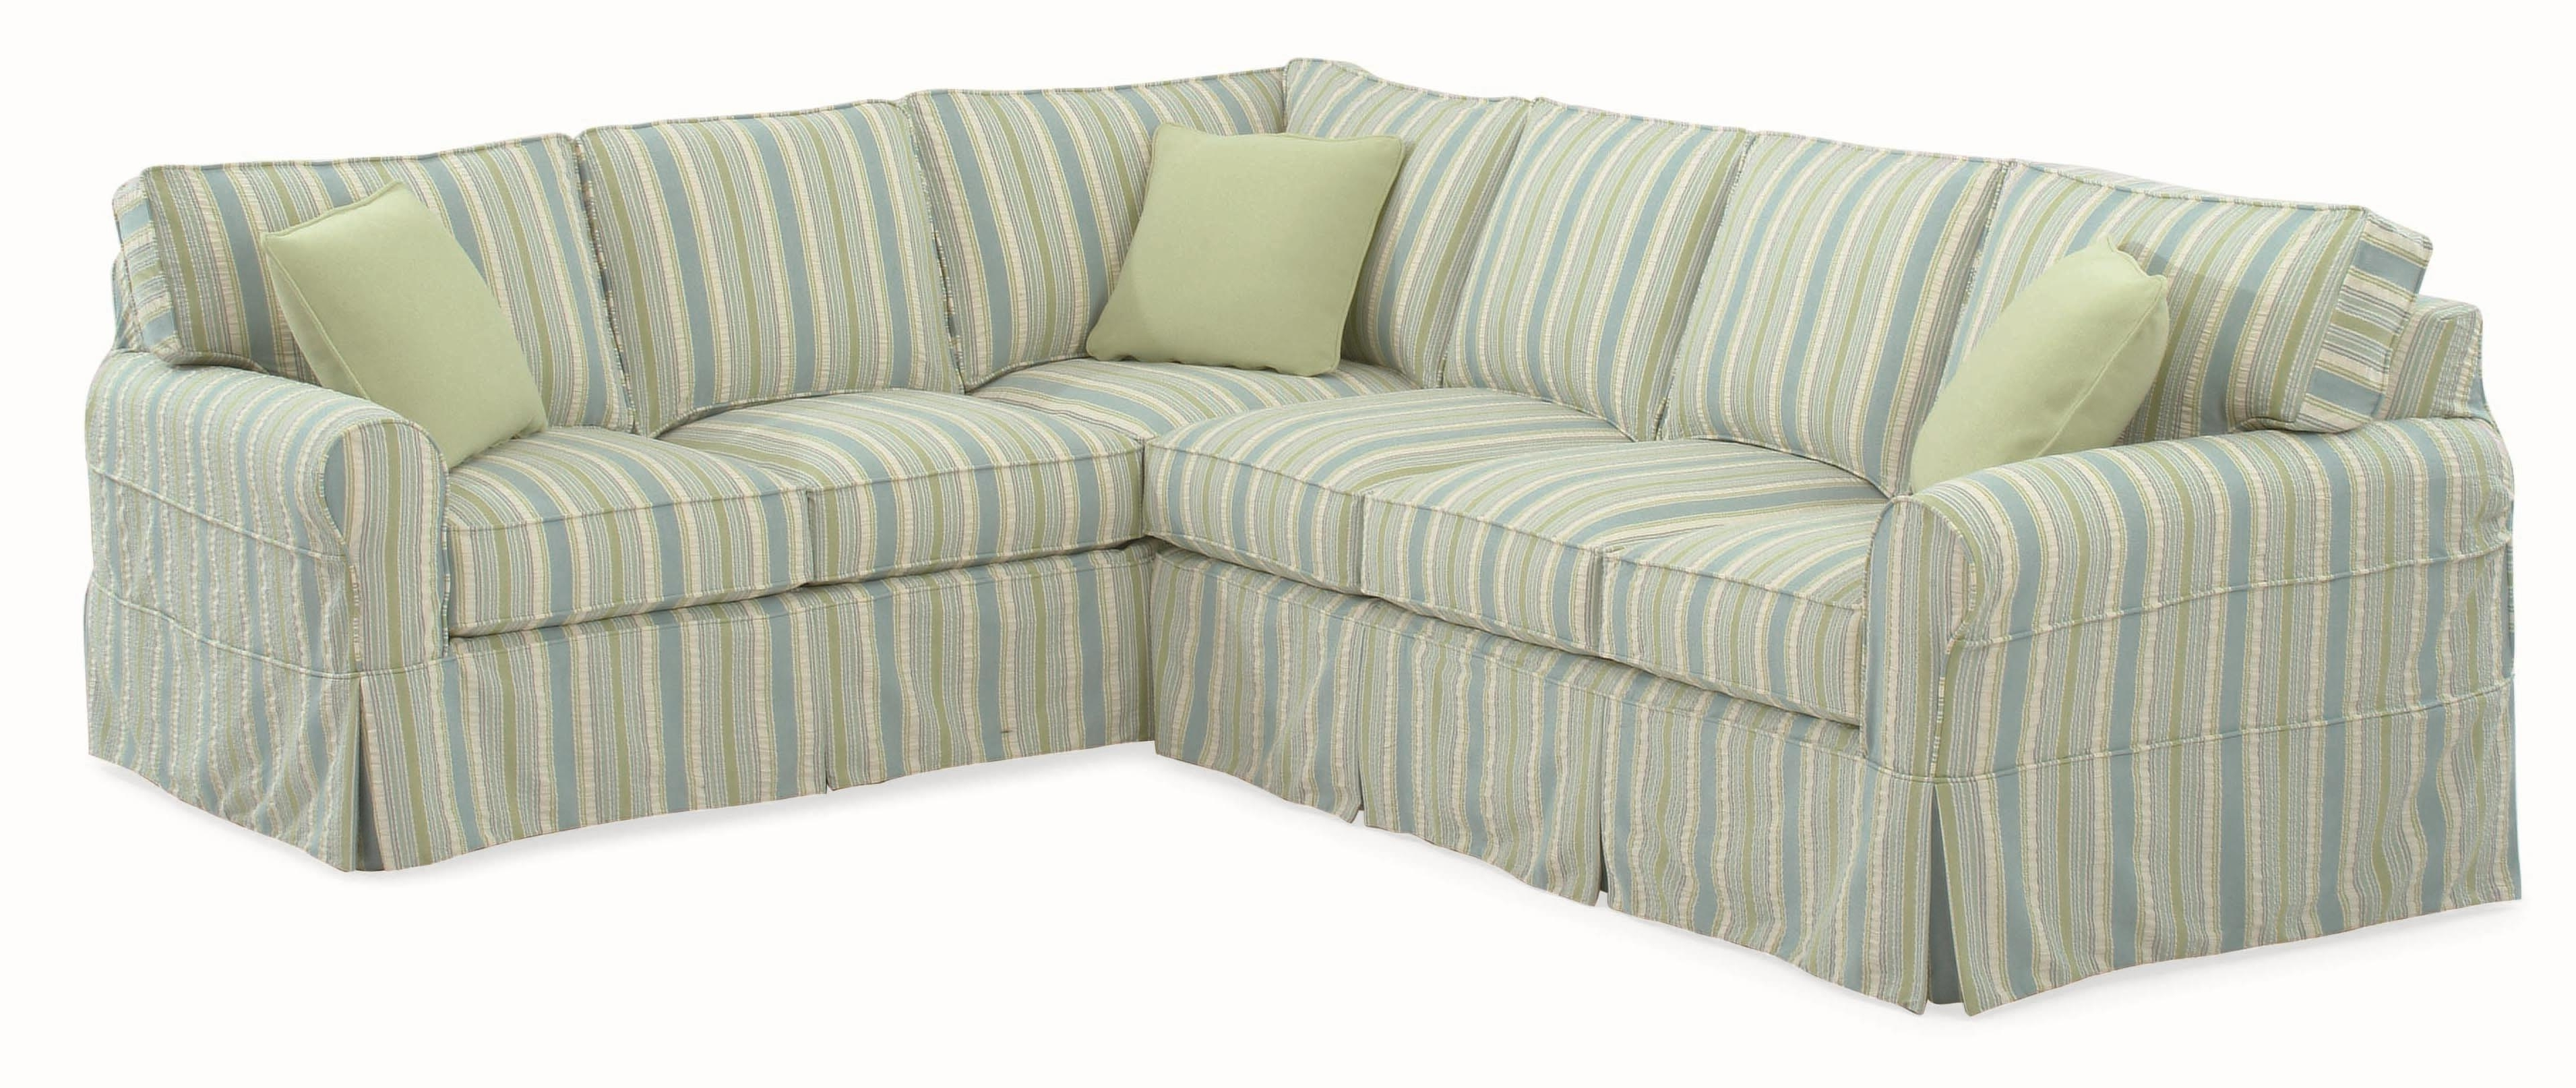 Sectional Sofas In Greenville Sc For Popular Braxton Culler 728 Casual Sectional Sofa With Rolled Arms And (View 14 of 15)